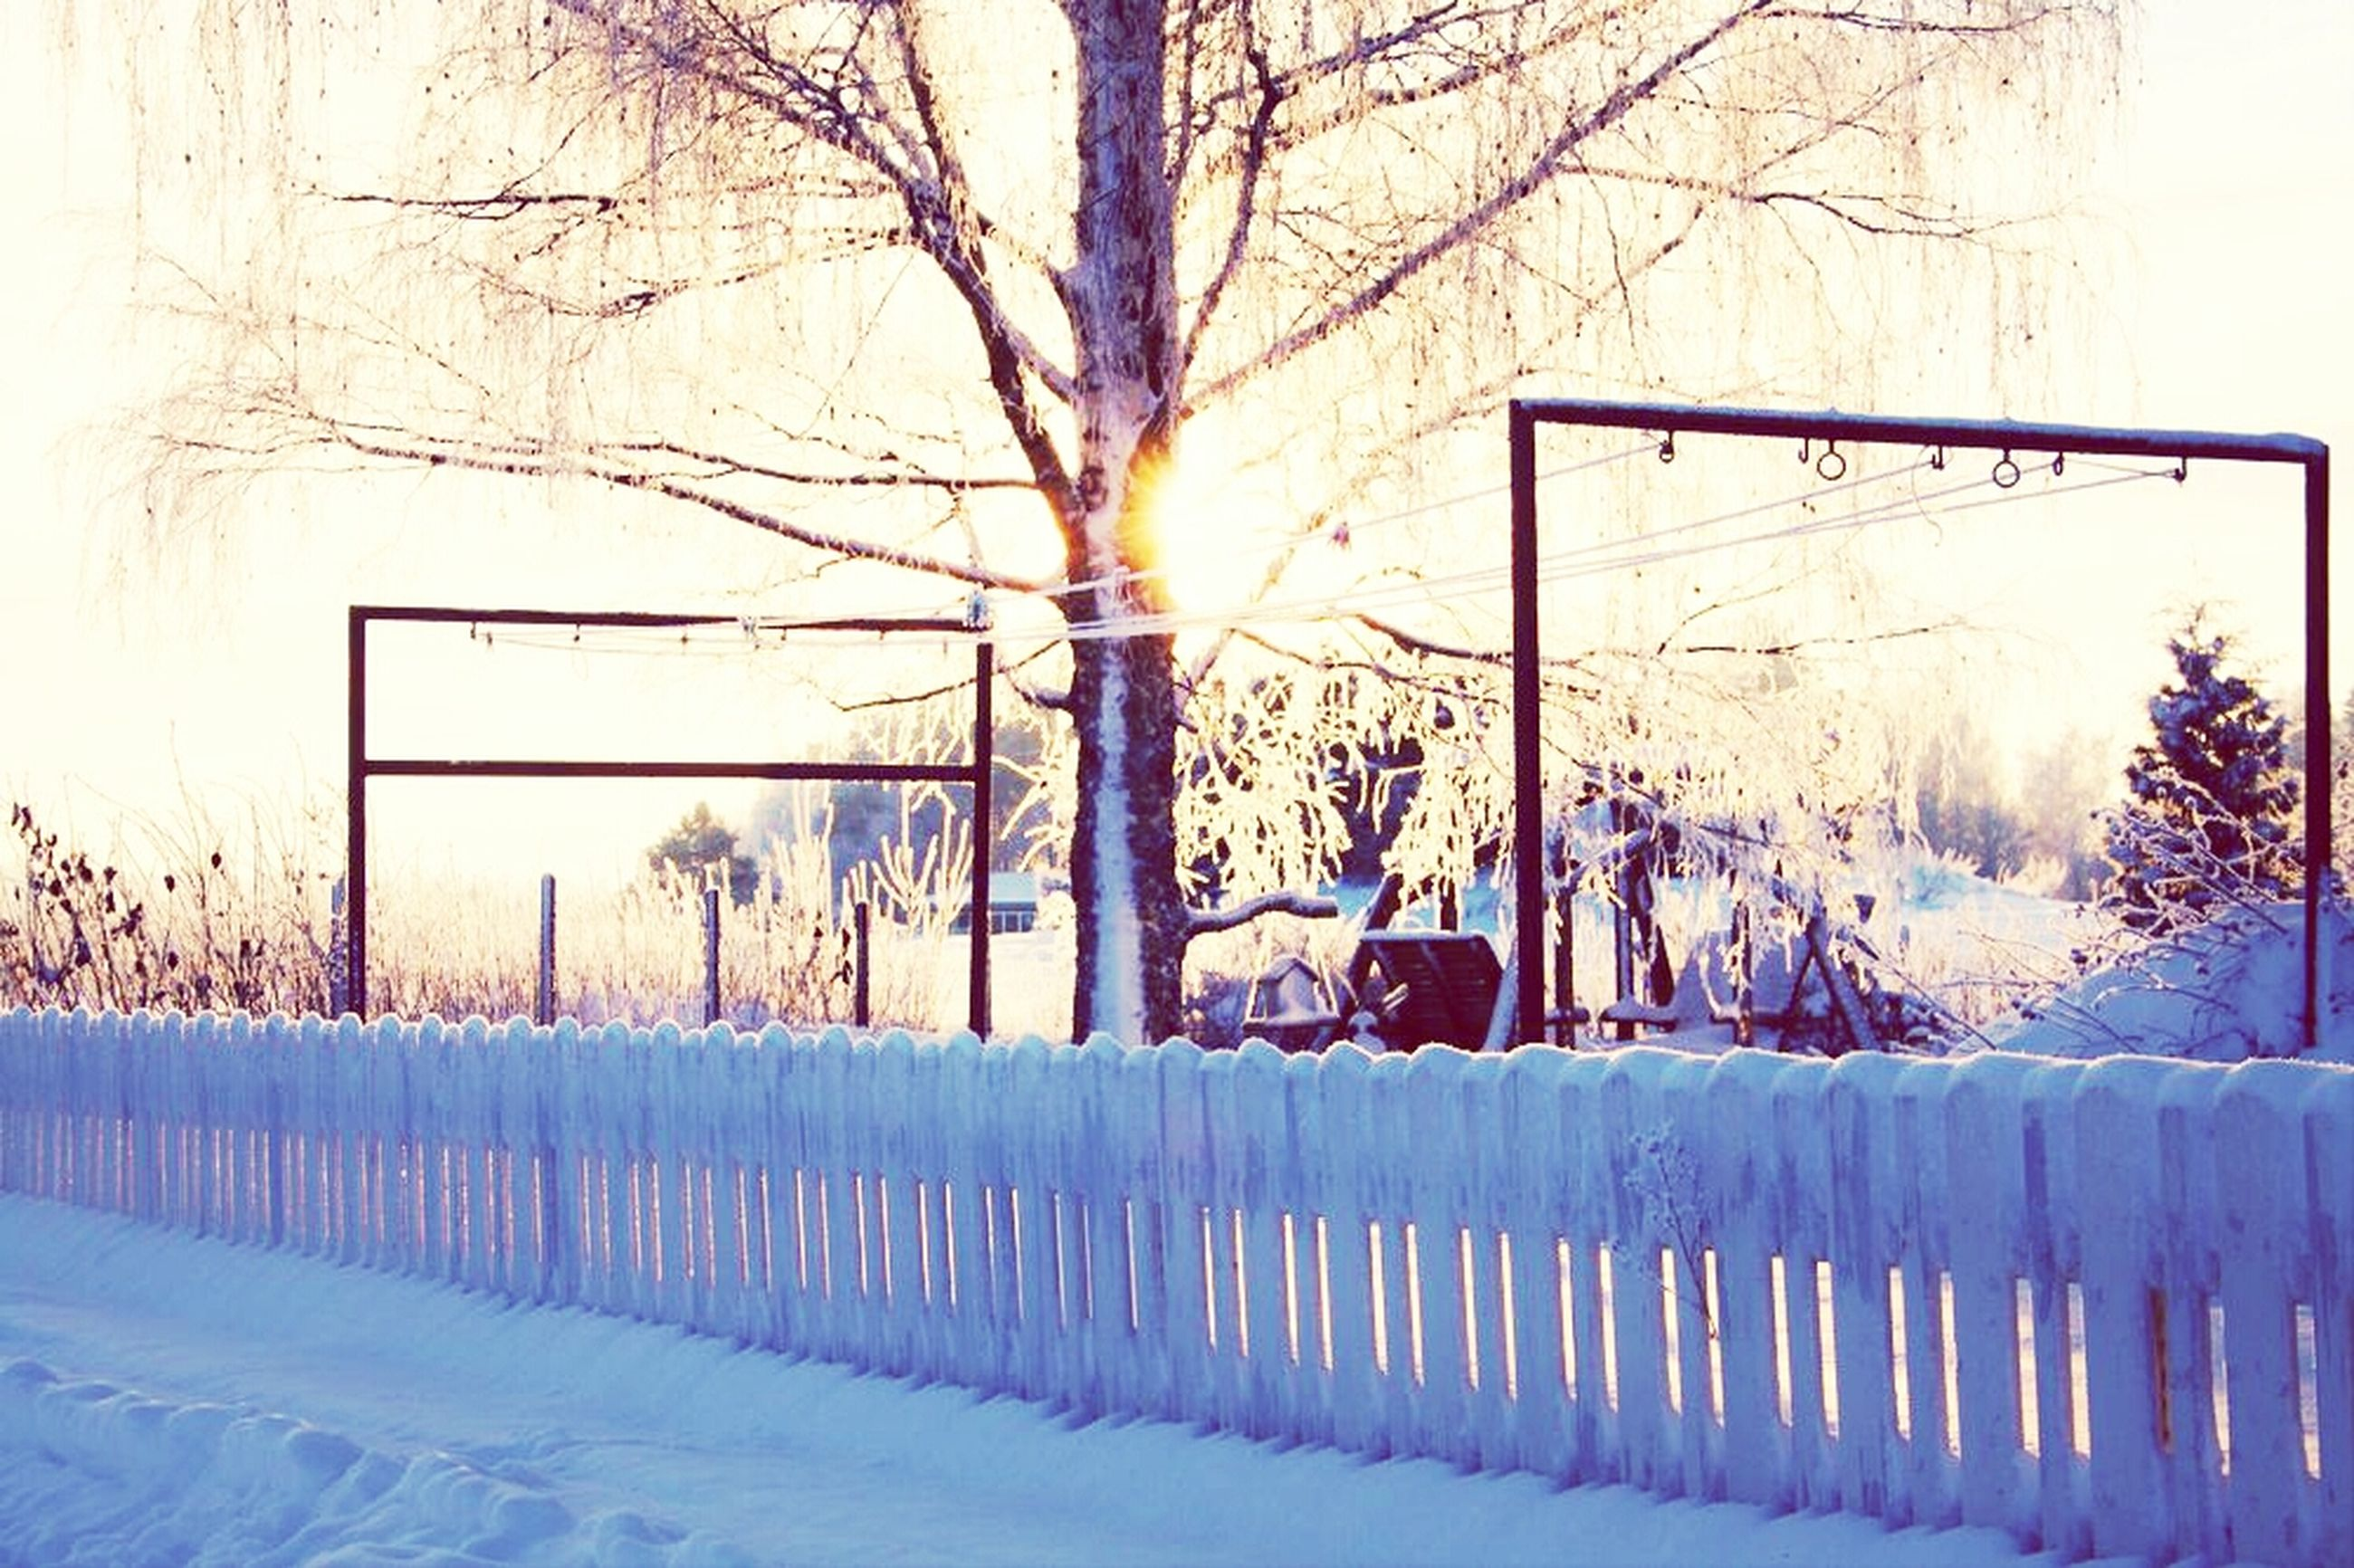 snow, winter, cold temperature, tree, season, fence, bare tree, weather, covering, built structure, sunlight, nature, railing, architecture, tree trunk, building exterior, field, sky, sun, branch